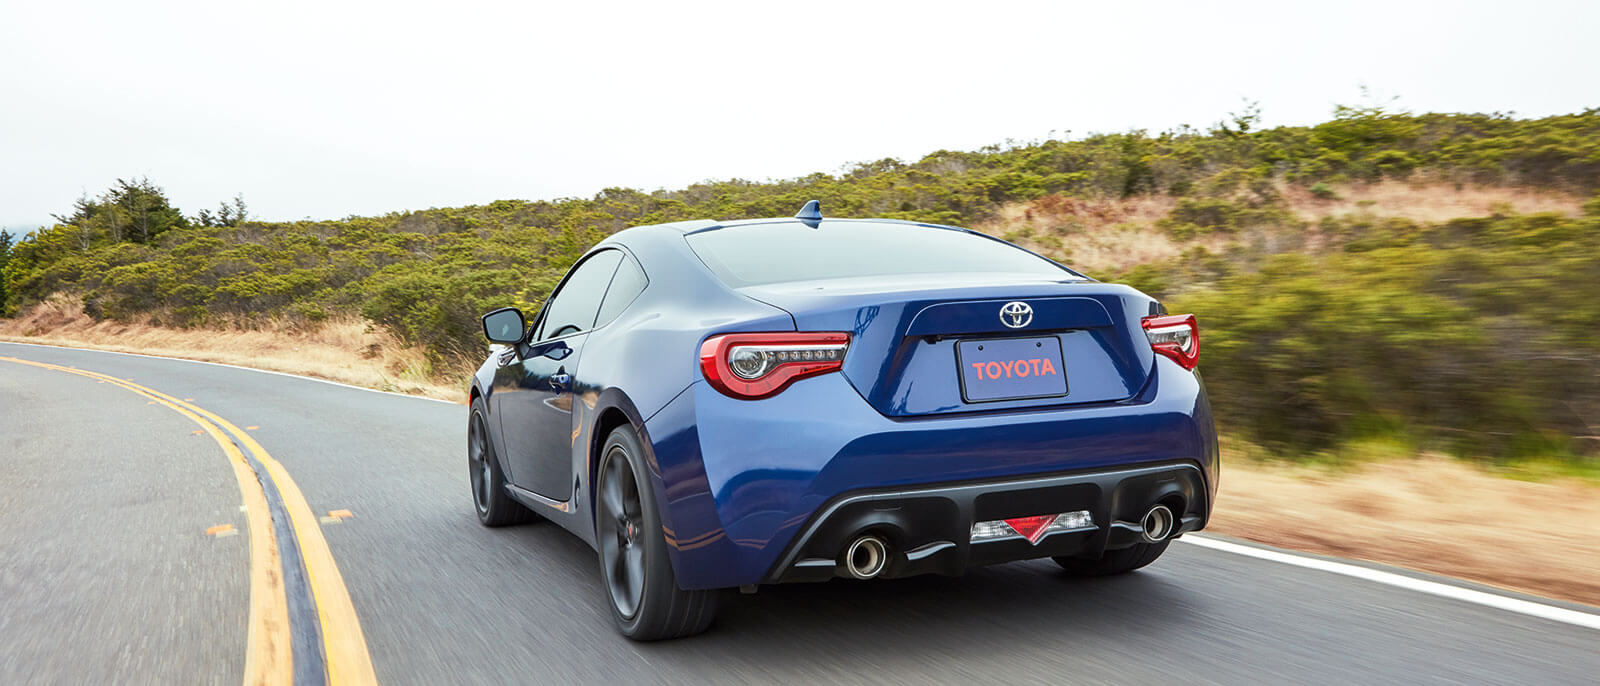 2017 Toyota 86 rear view on highway